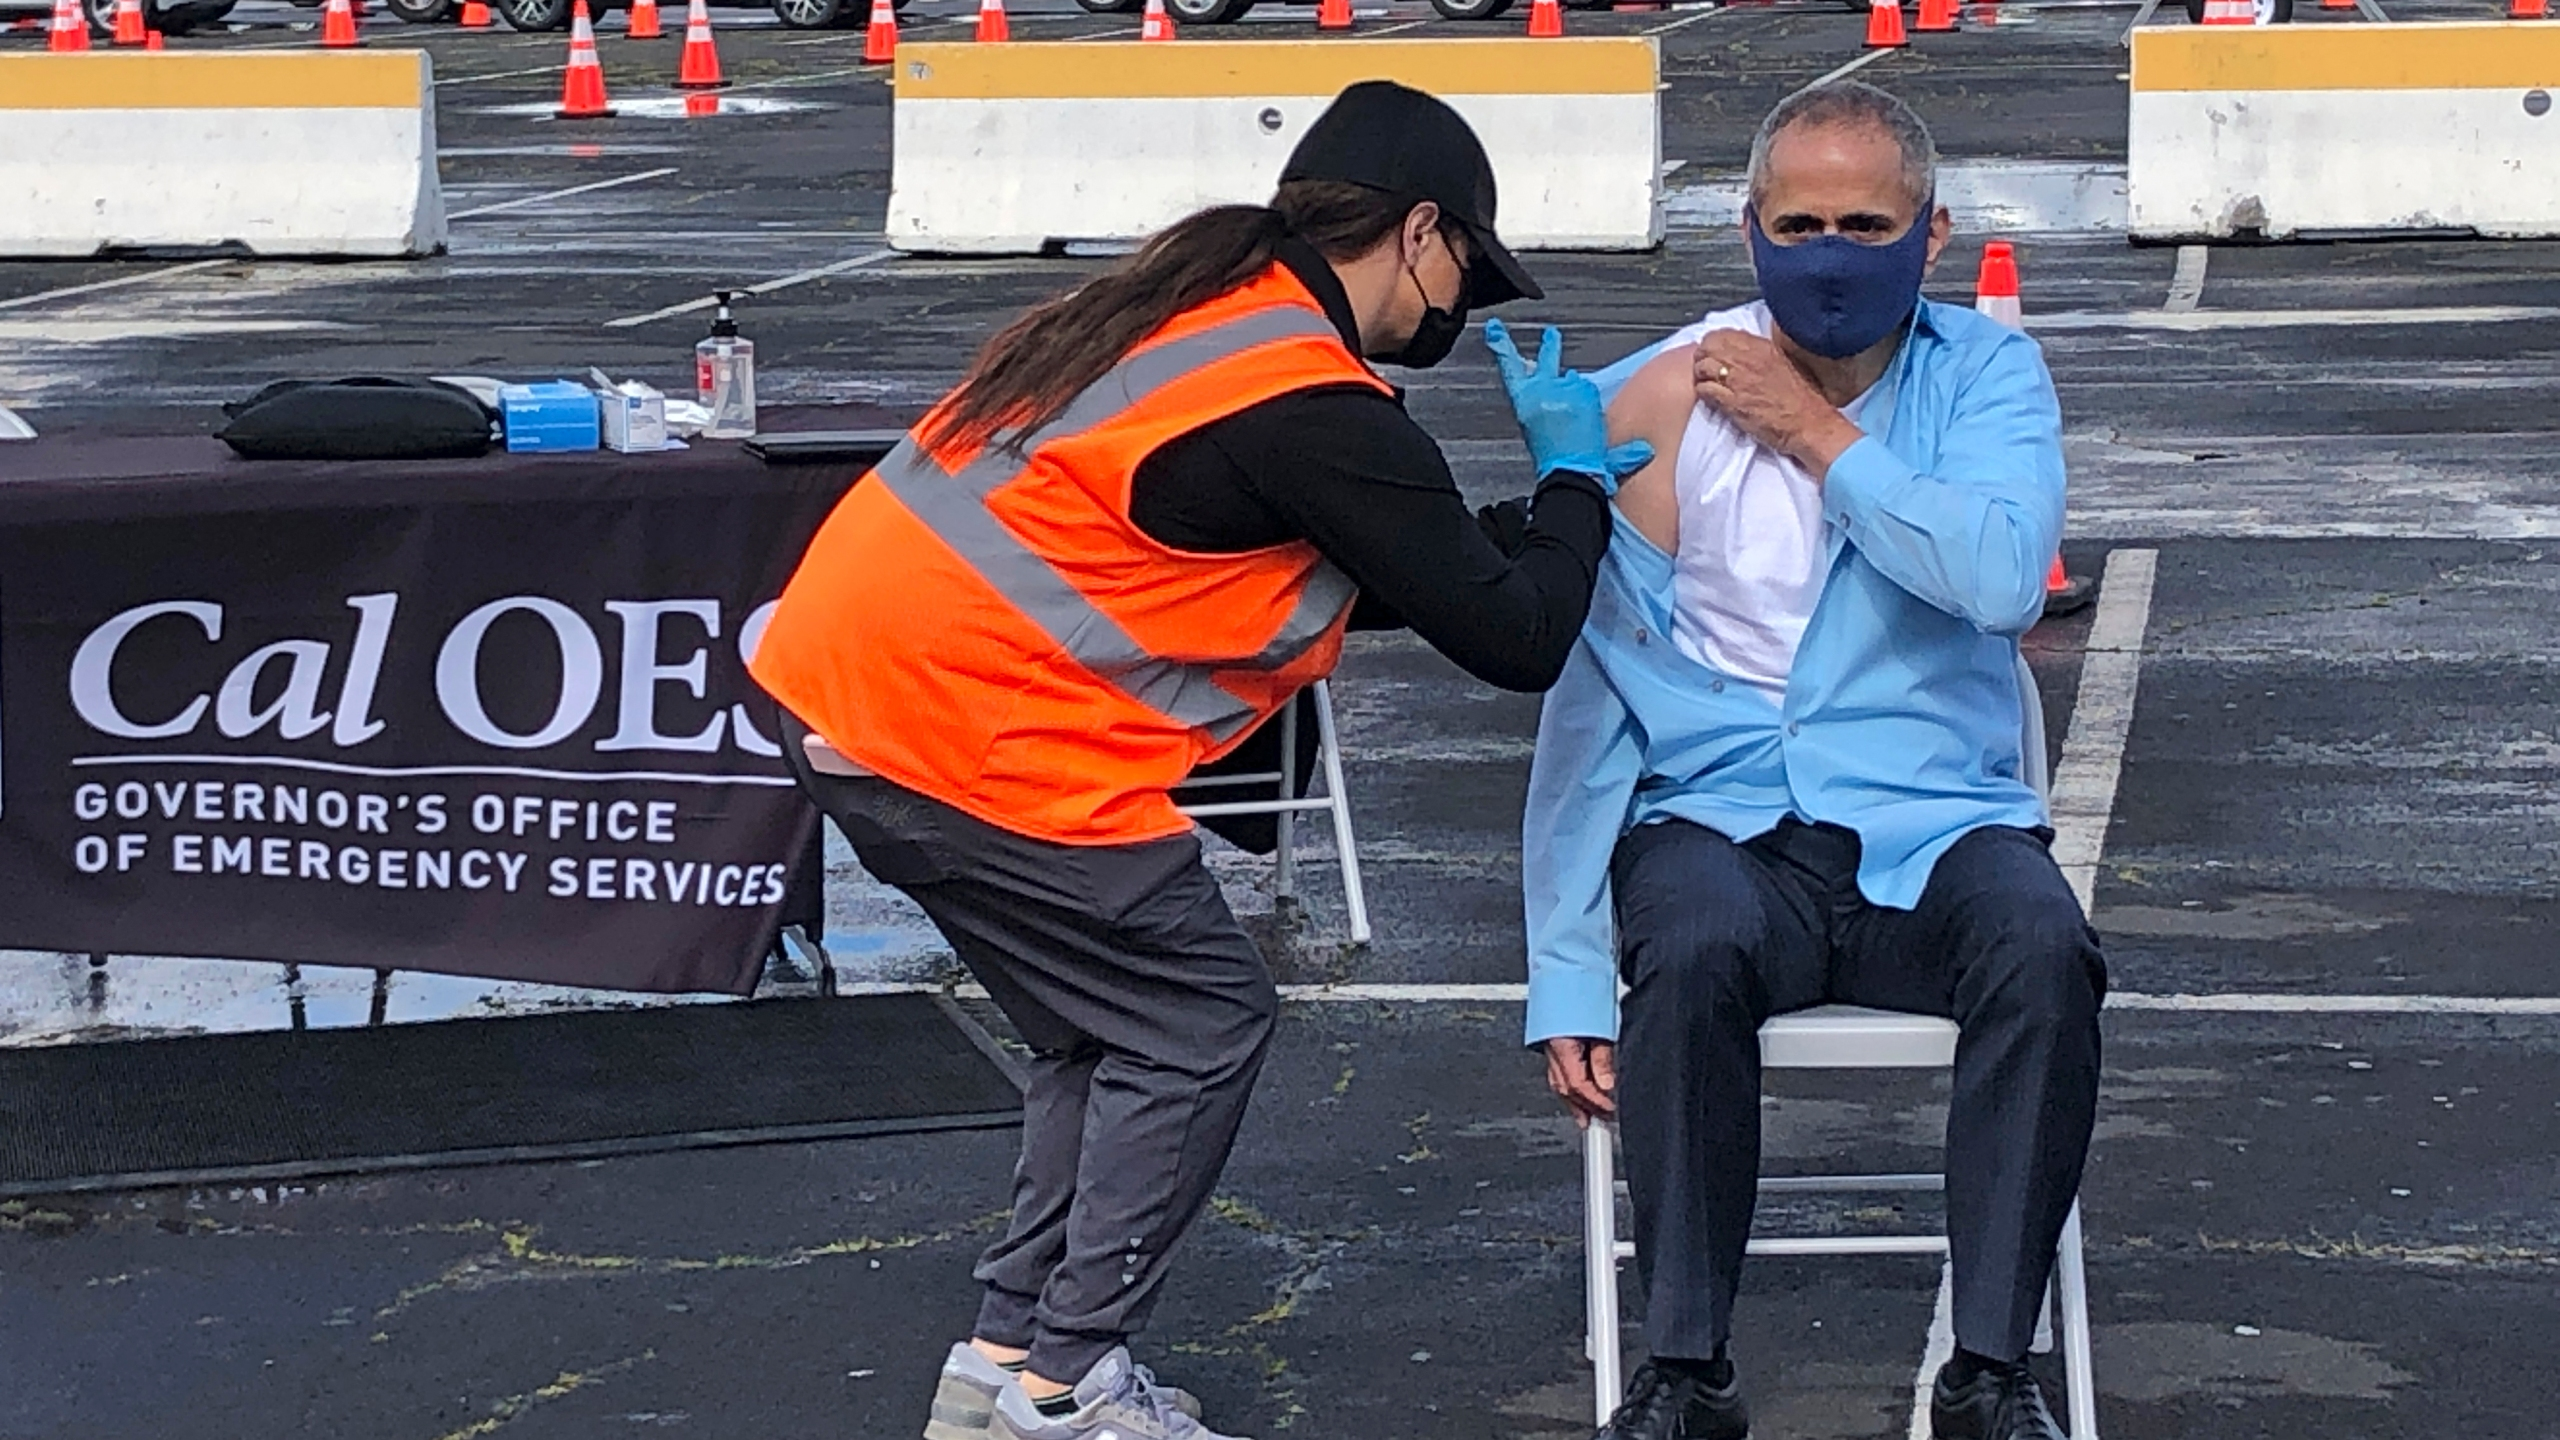 Dr. Tomas Aragon, State Public Health Officer and California Department of Public Health Director, takes part in a vaccination event at the RingCentral Coliseum in Oakland, Calif., on Thursday, March 11, 2021, to highlight the new one-dose Janssen COVID-19 vaccine by Johnson & Johnson. (AP Photo/Haven Daley)